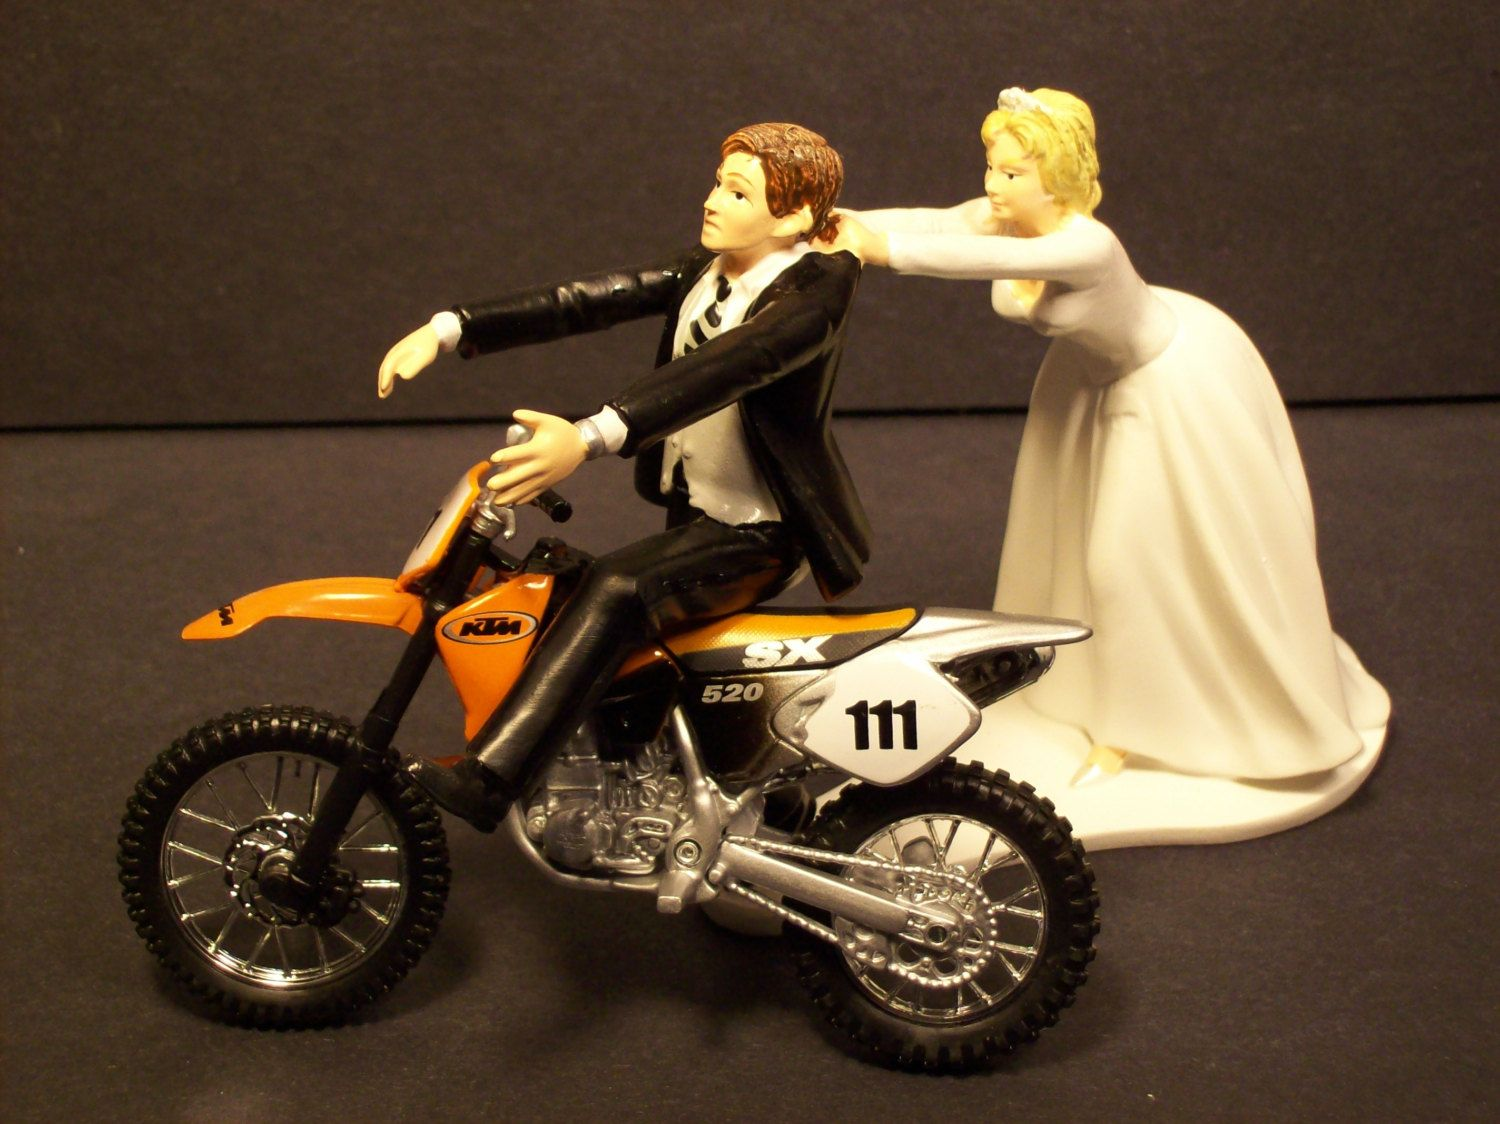 medium resolution of come back motorcycle ktm orange 520 sx dirt bike bride and groom funny bike wedding cake topper 67 99 via etsy